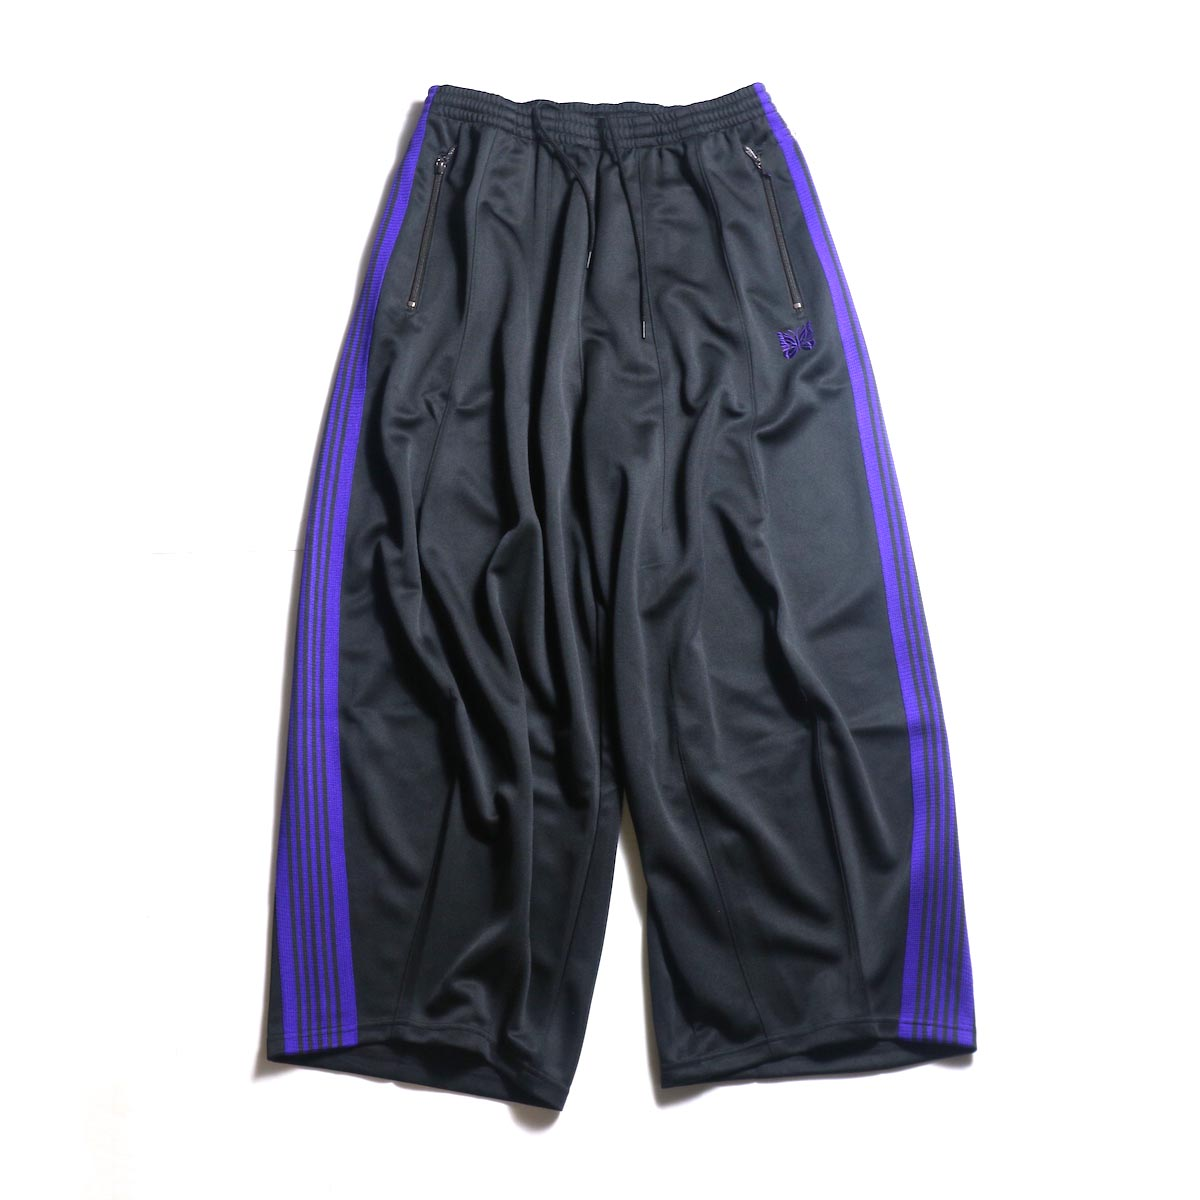 Needles / H.D. TRACK PANT - POLY SMOOTH (Charcoal)